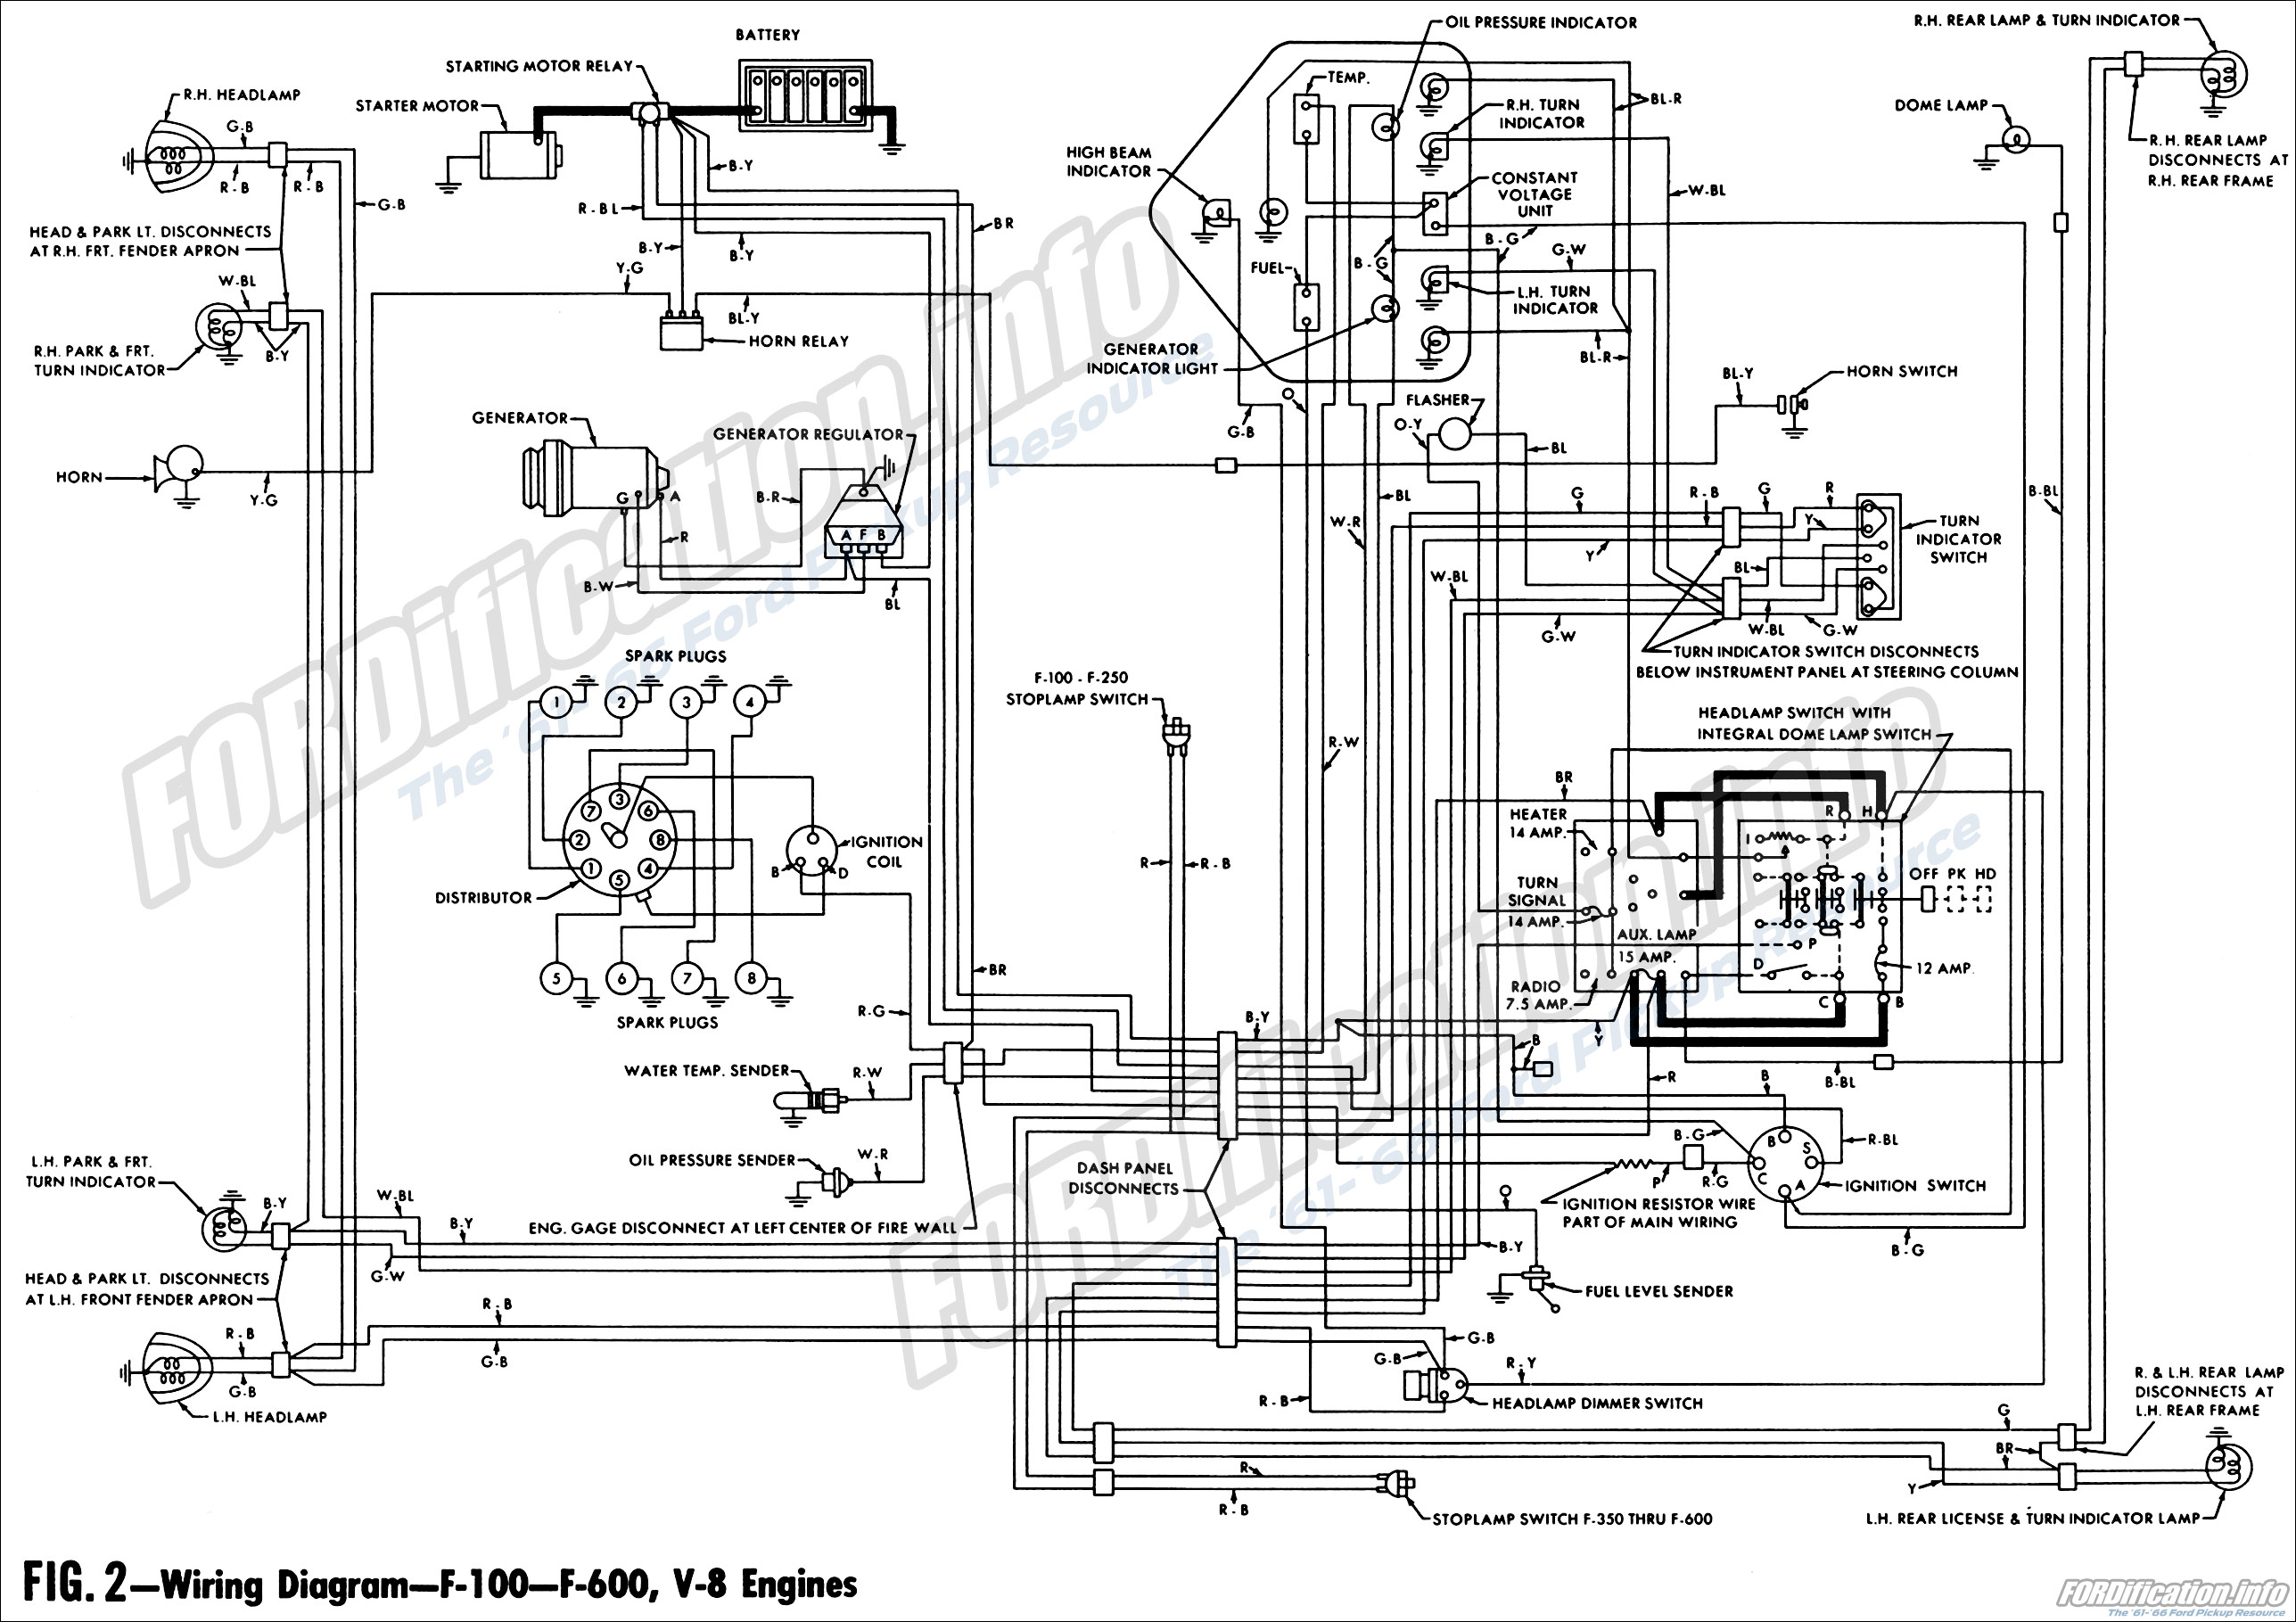 1961 Ford Truck Wiring Diagrams Fordification Info The